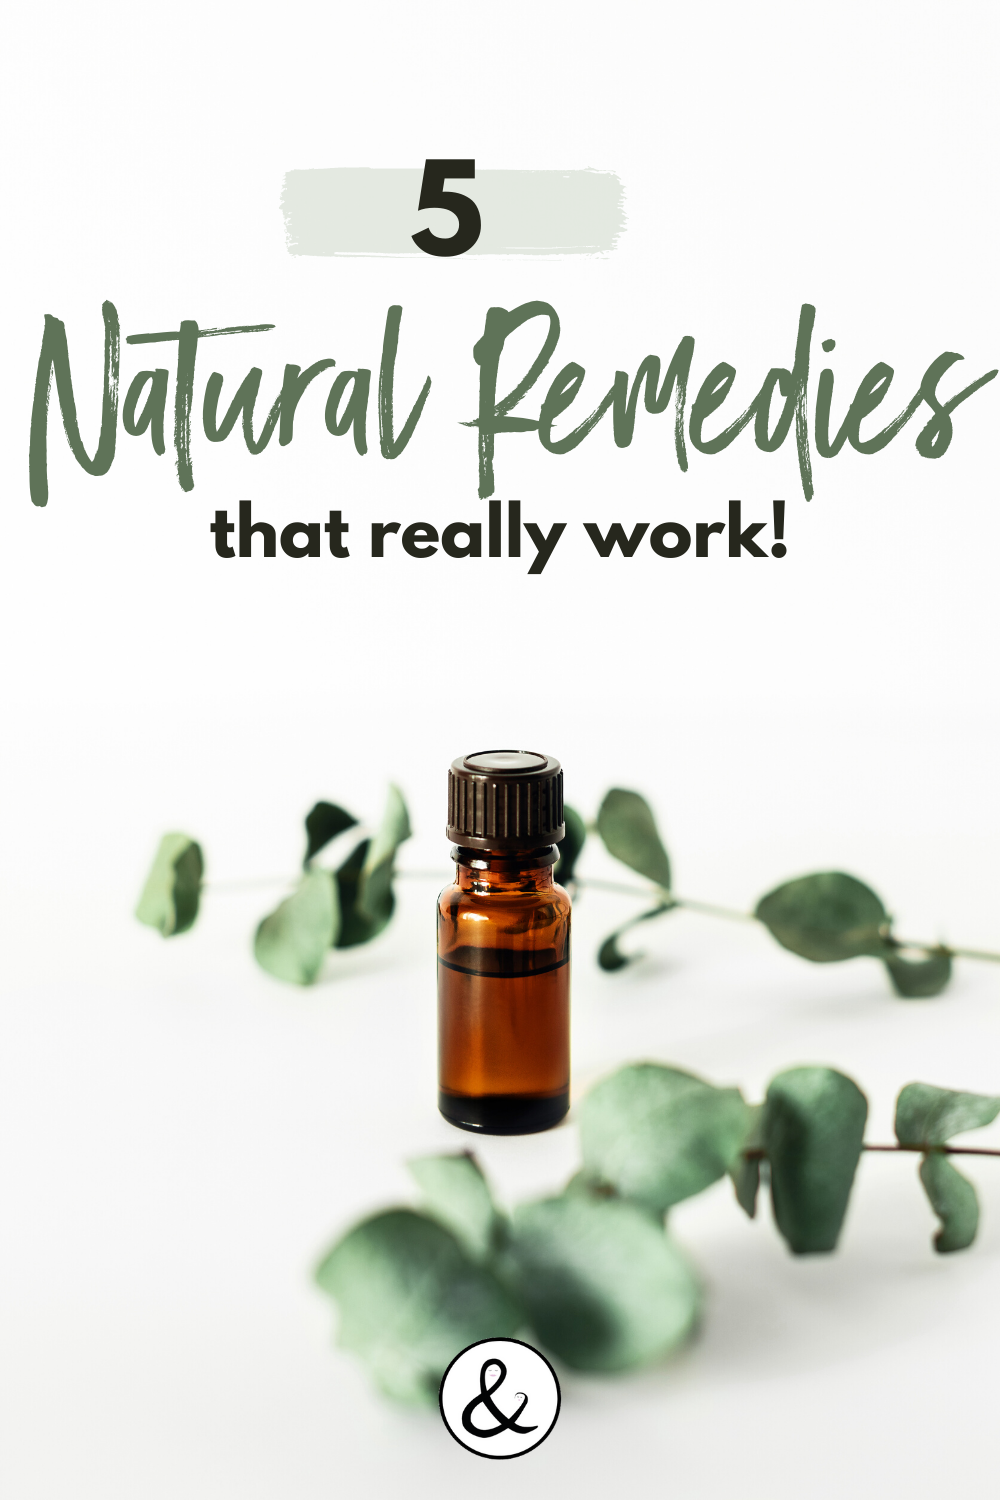 All Natural Remedies That Really Work